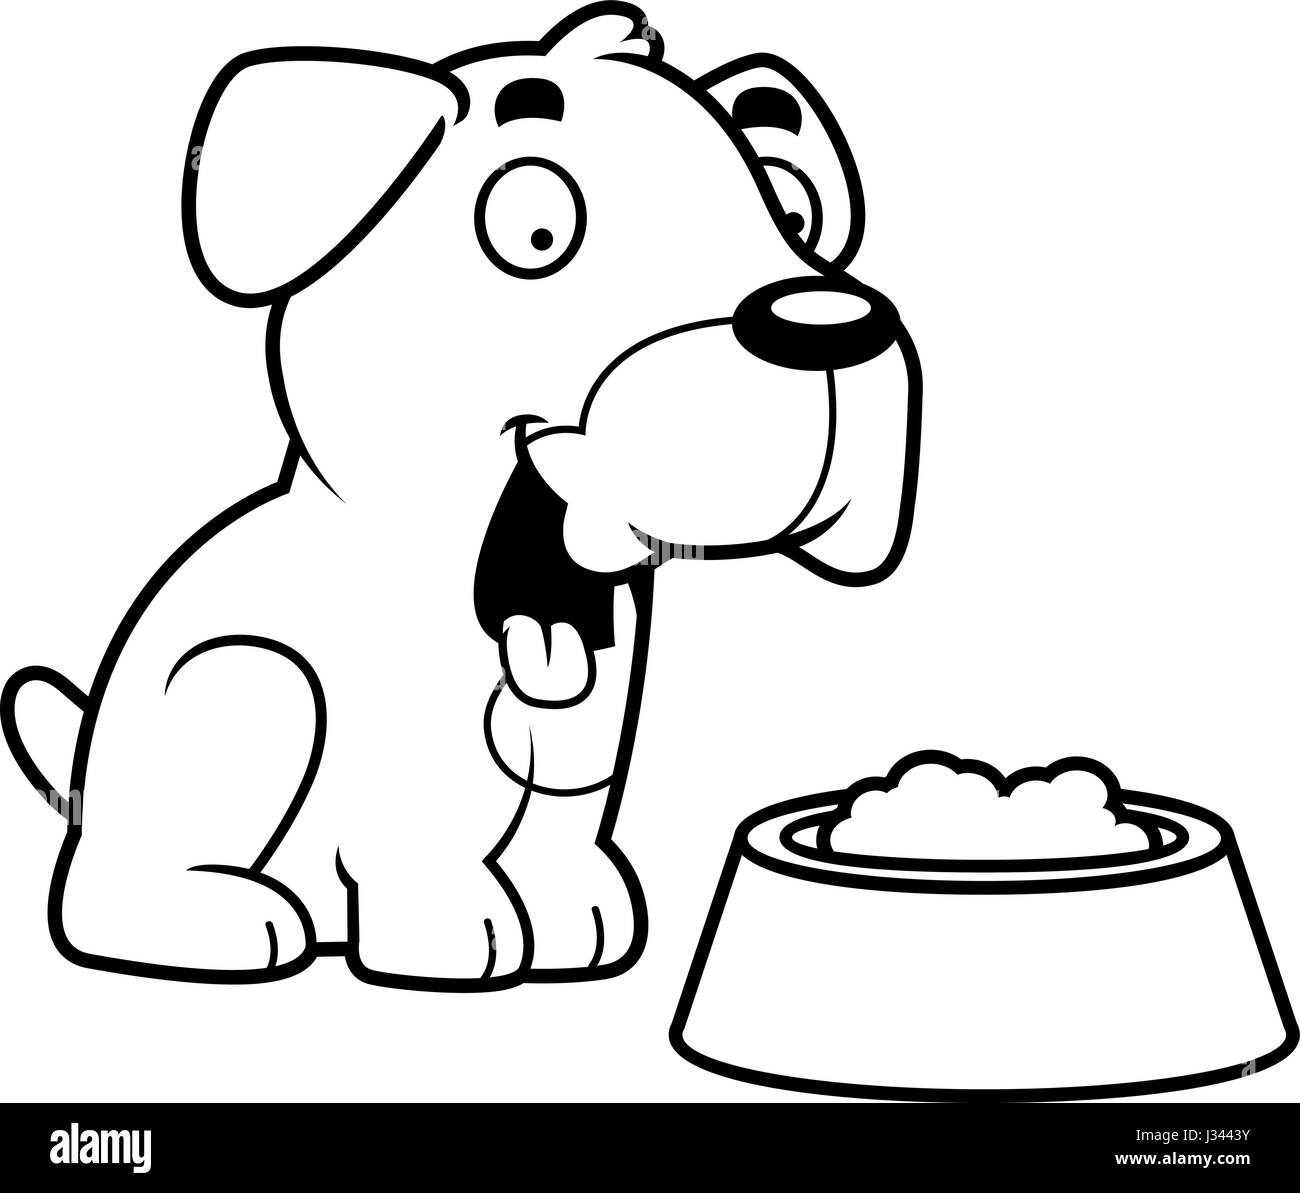 dog bowl black and white stock photos u0026 images alamy